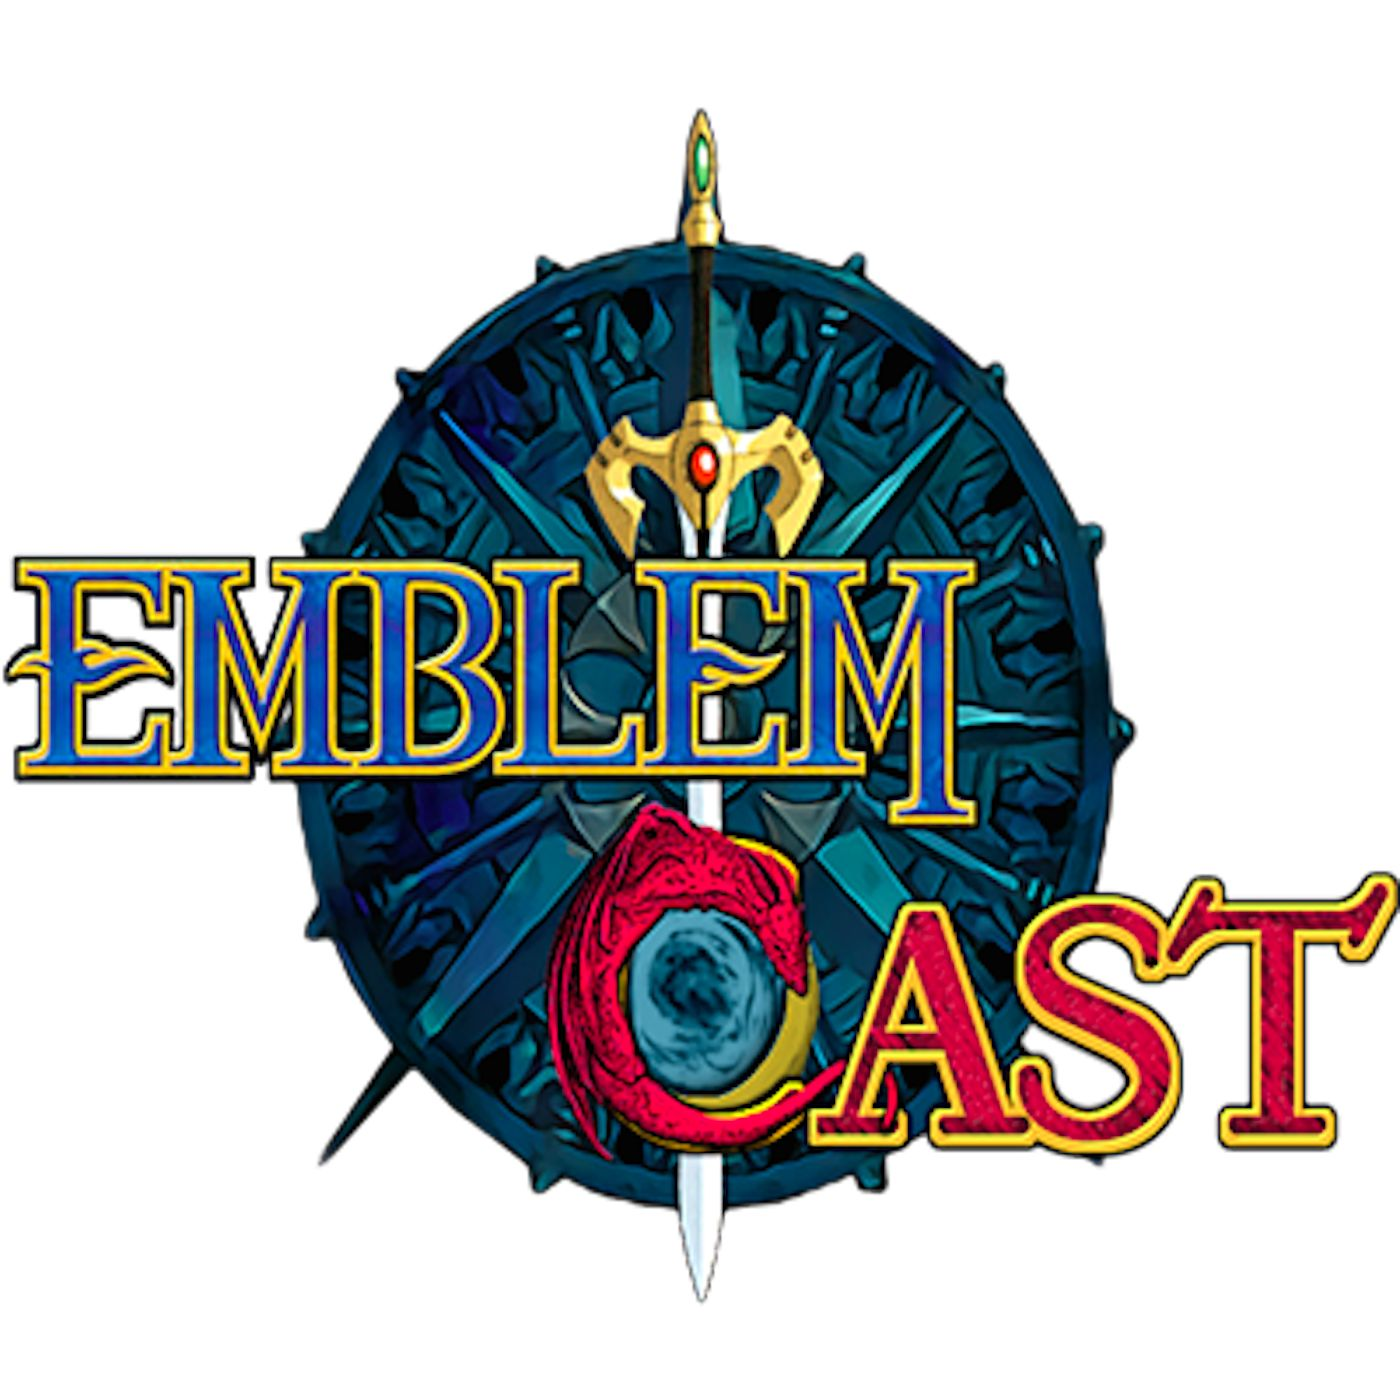 EmblemCast - A Fire Emblem Podcast